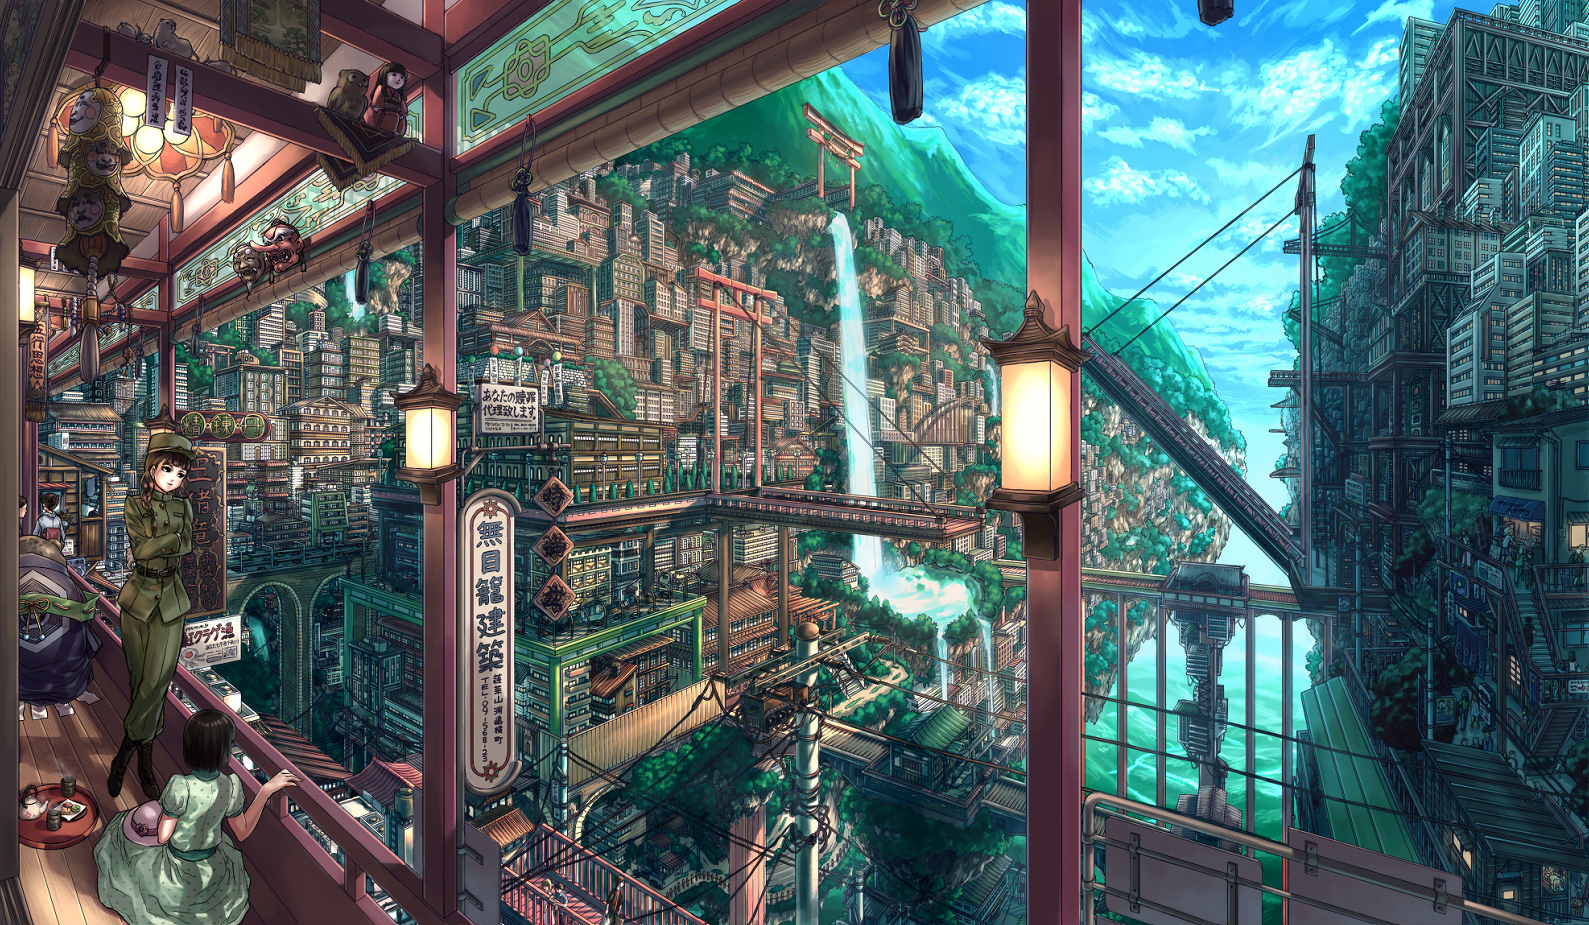 Japanese wallpapers 2 Japanese fantasy and scenic illustrations 1589x925